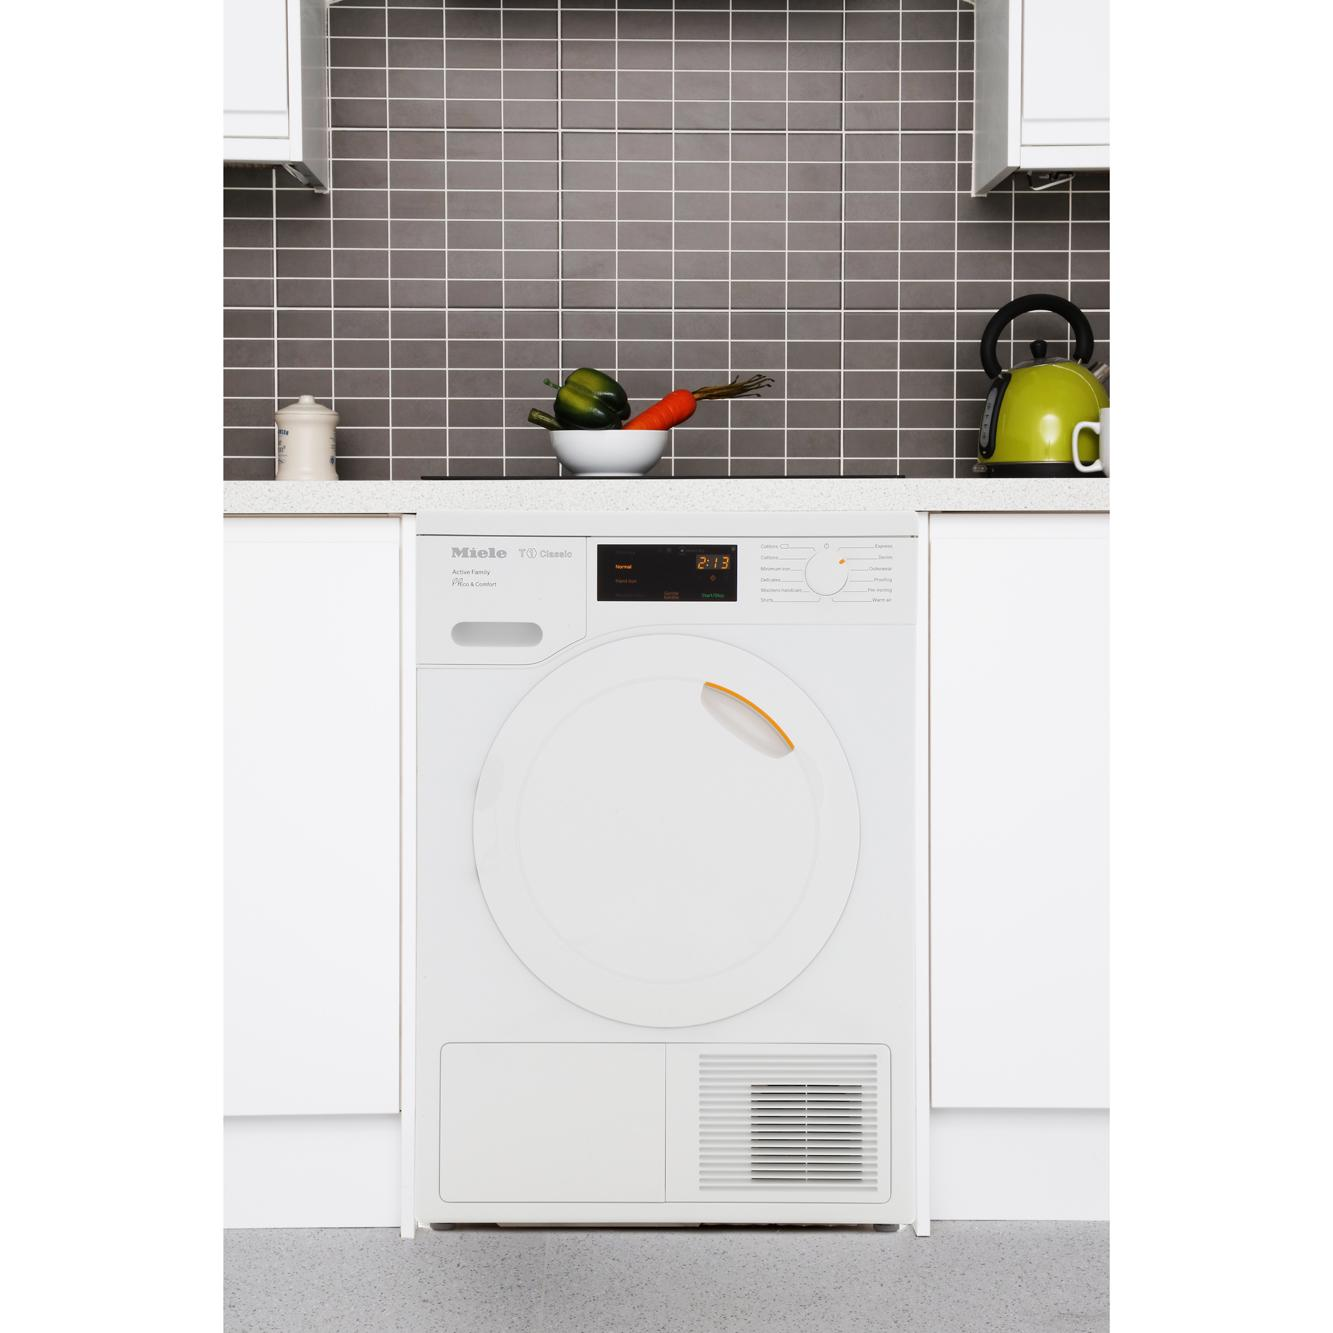 buy miele t1 classic tdd220 white condenser dryer with heat pump technology tdd220white. Black Bedroom Furniture Sets. Home Design Ideas